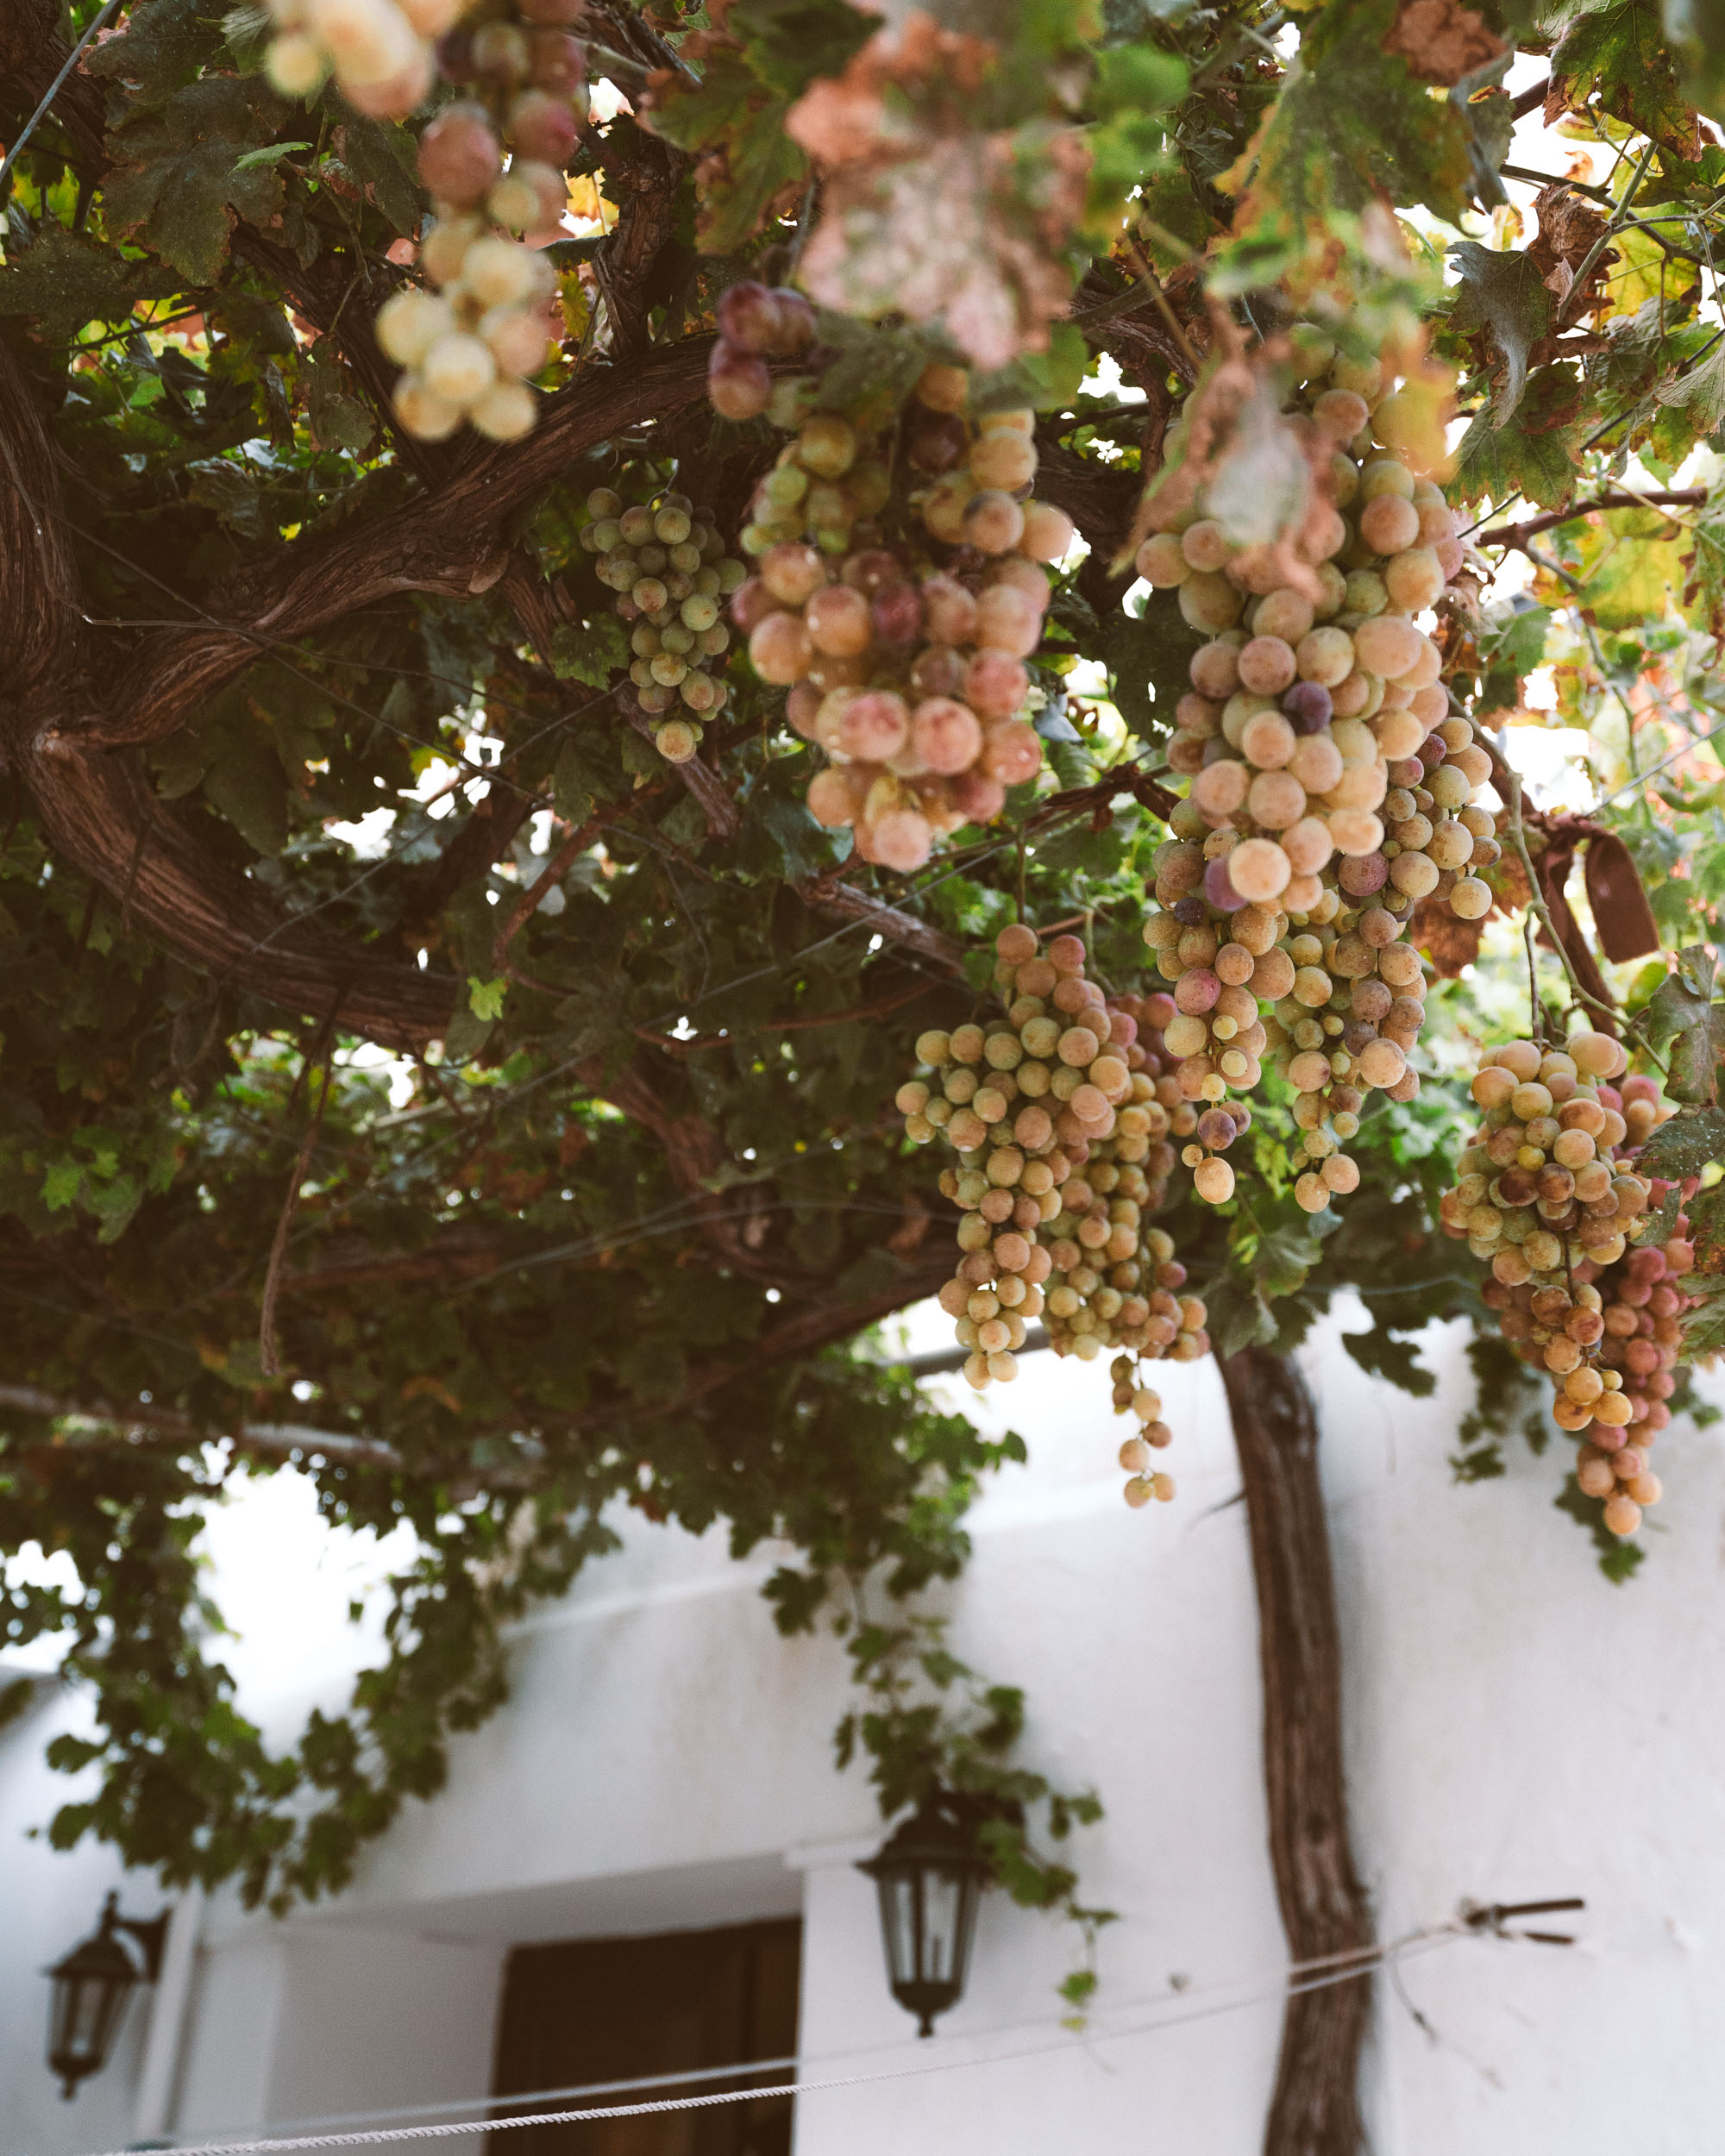 Grapes in Omodos Village Cyprus via @finduslost